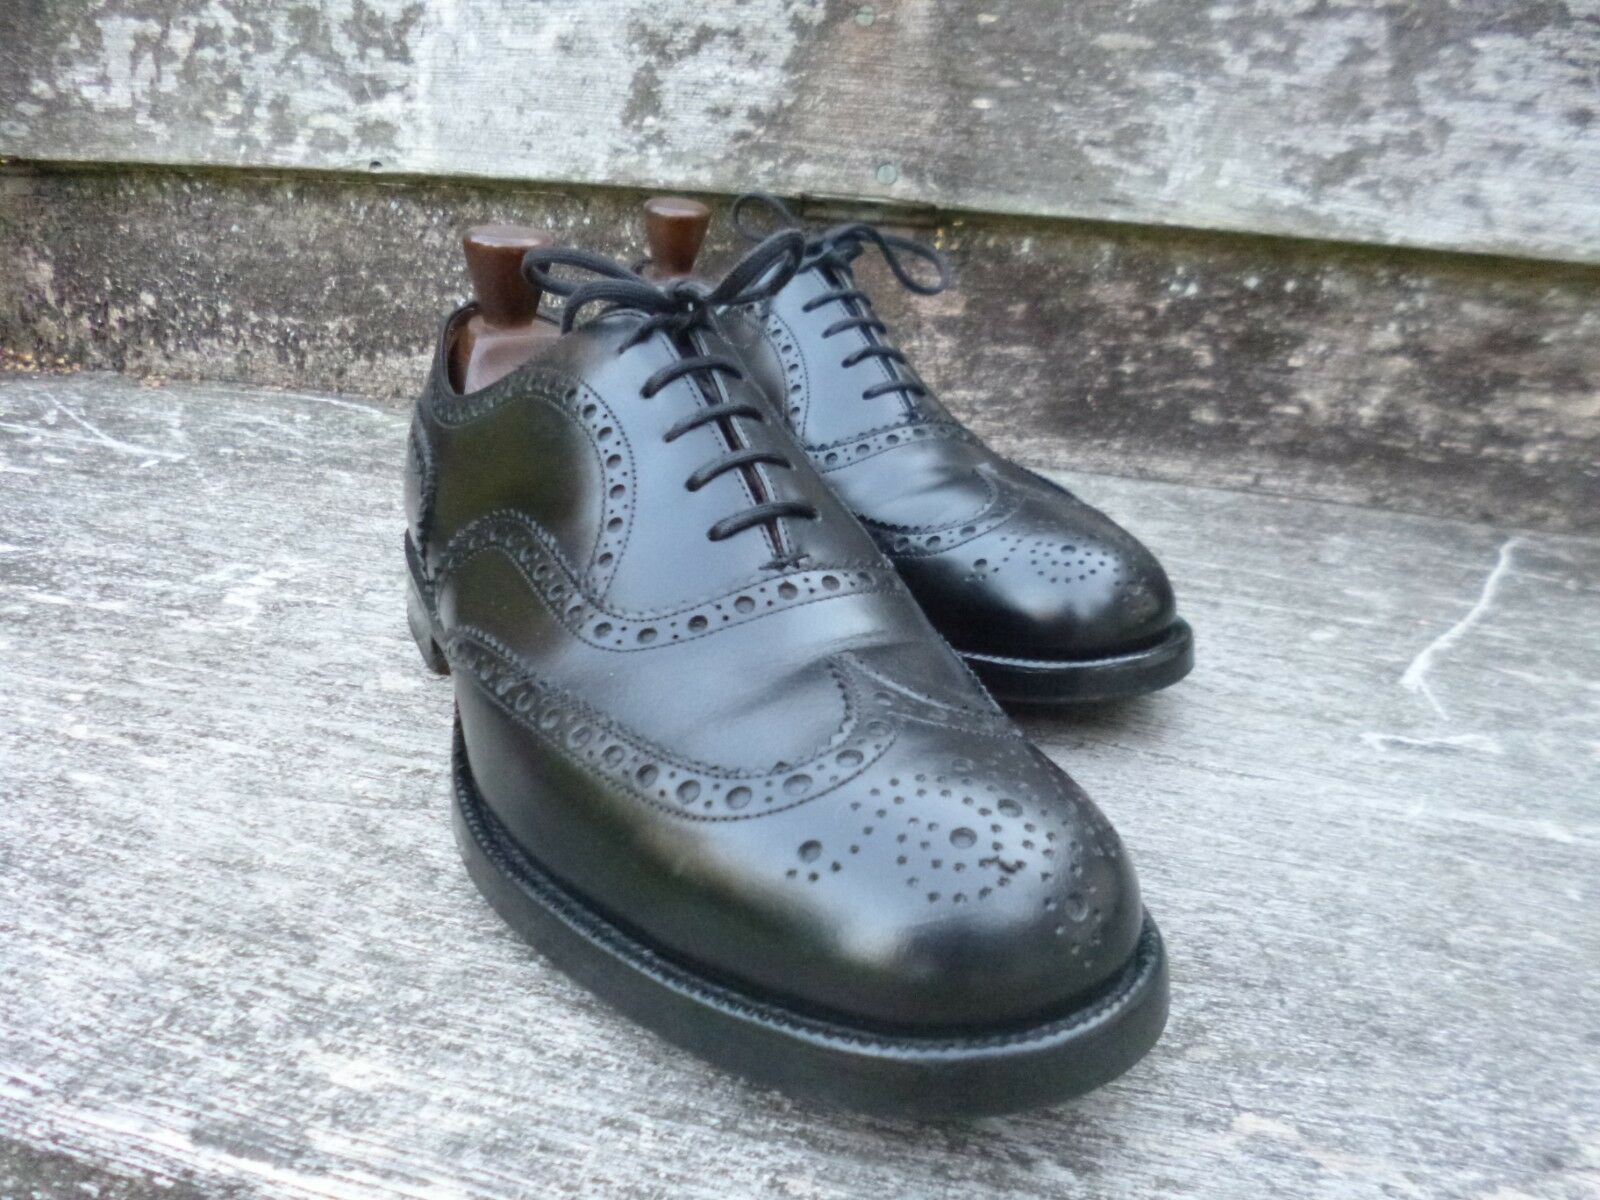 CHURCH BROGUES – schwarz schwarz schwarz – UK 8 – ATTLEBGoldUGH – EXCELLENT CONDITION  f1bdbc